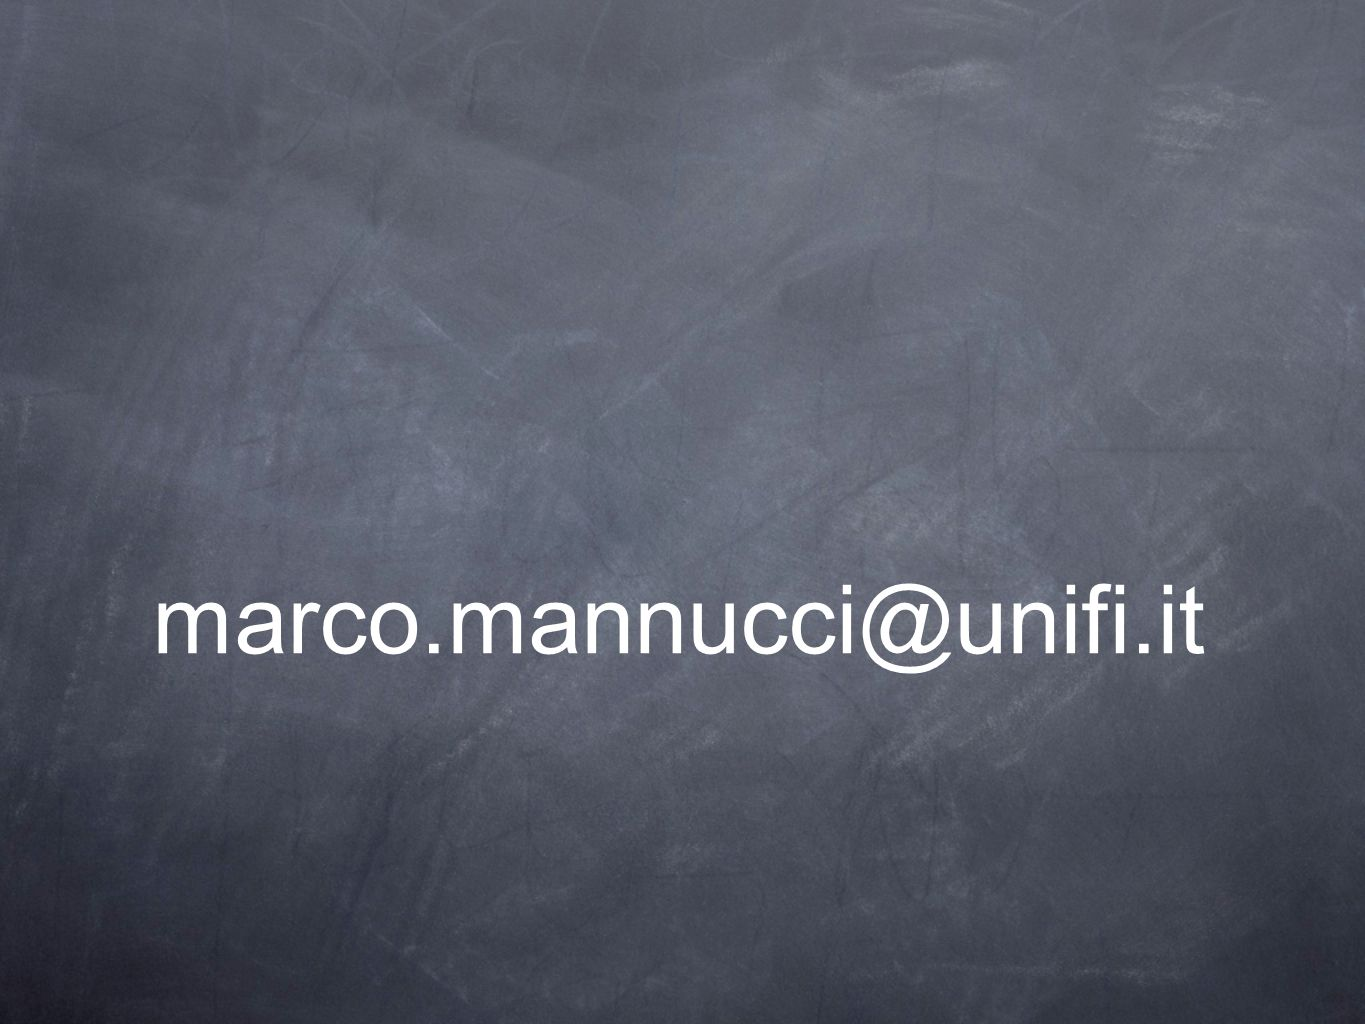 marco.mannucci@unifi.it